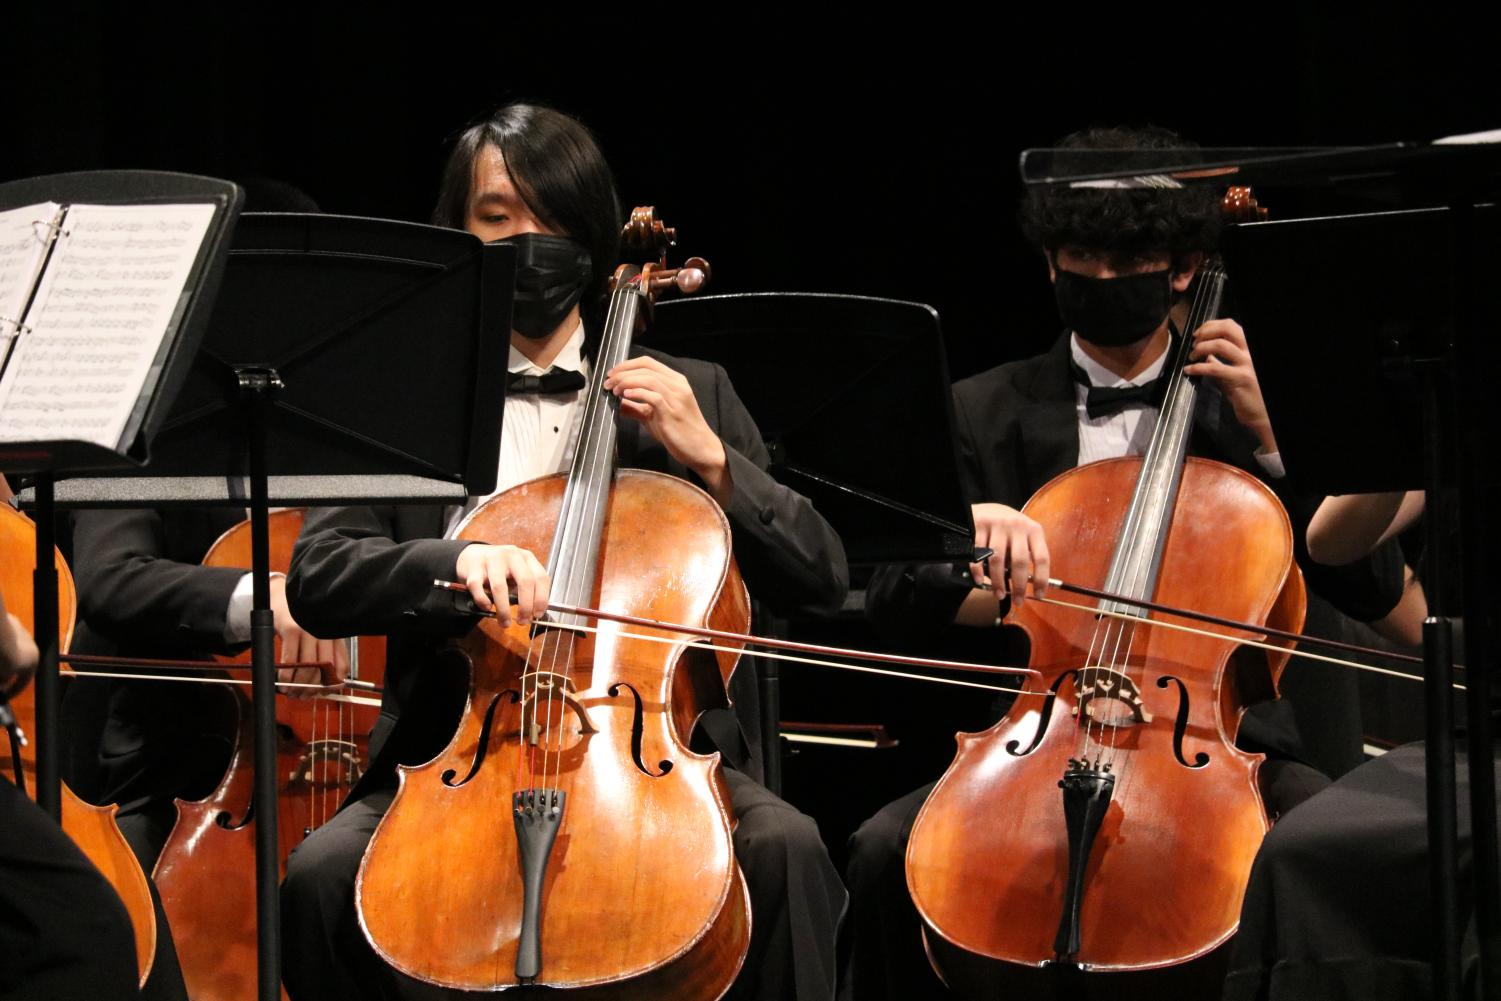 Orchestra+Delivers+Shining+Fall+Concert+Performance+Following+18+Month+Hiatus